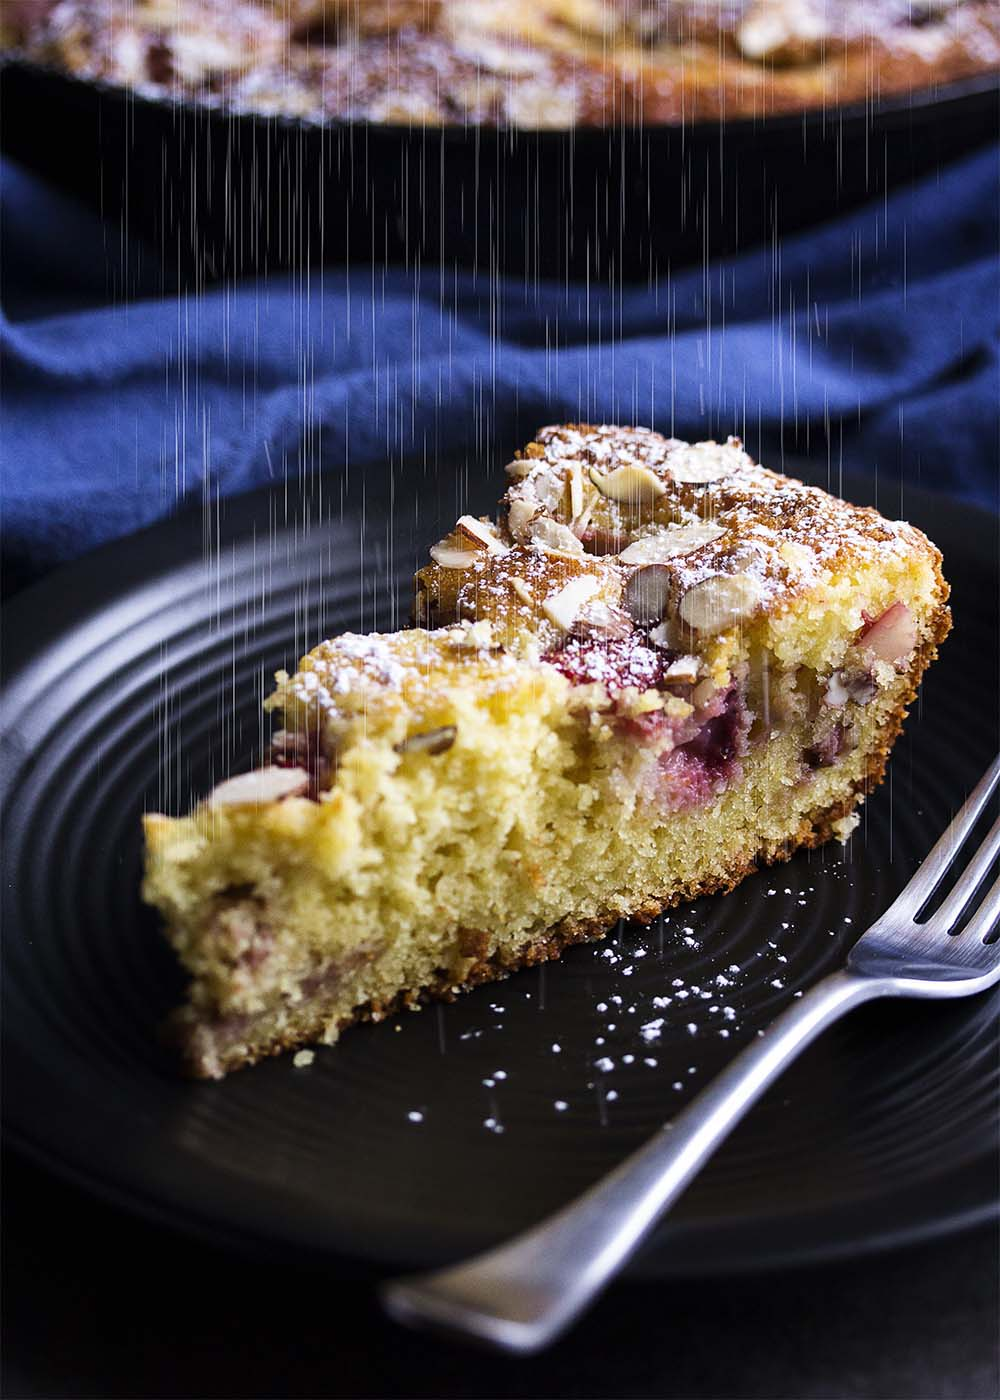 This easy strawberry yogurt cake is topped with sliced almonds and cooks right in your cast iron skillet! It's great as a breakfast cake or for an evening dessert with some vanilla ice cream.   justalittlebitofbacon.com